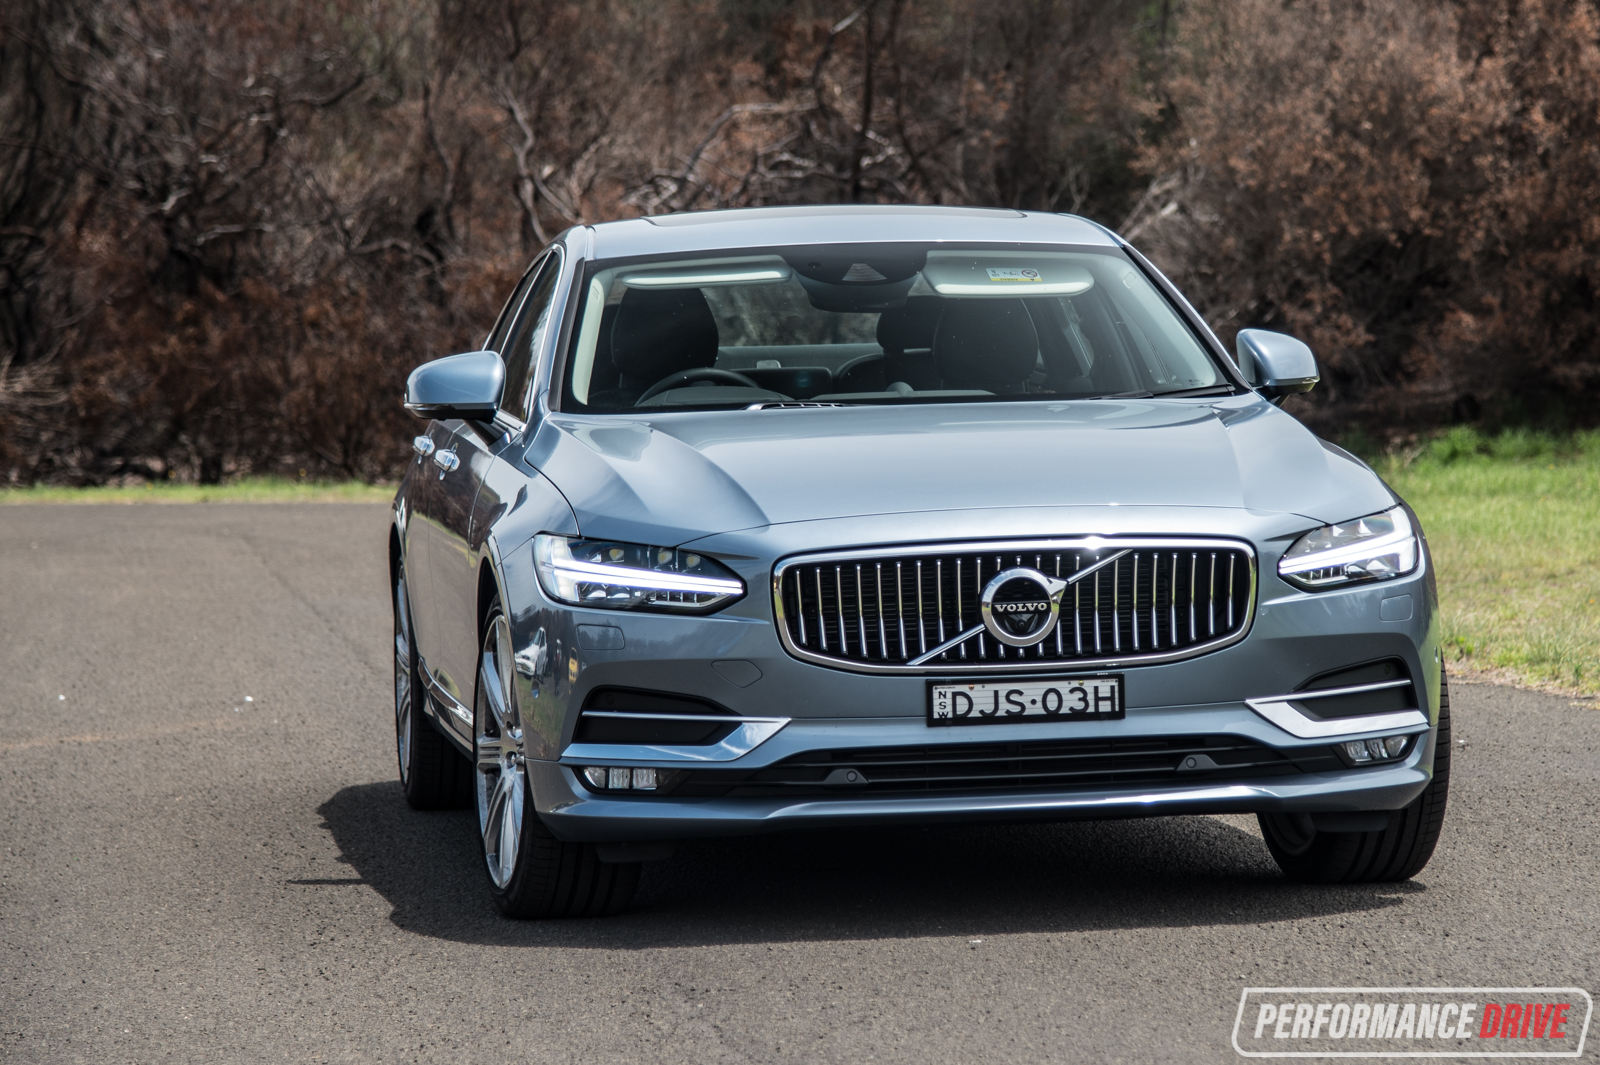 2017 Volvo S90 D5 Inscription review (video) | PerformanceDrive